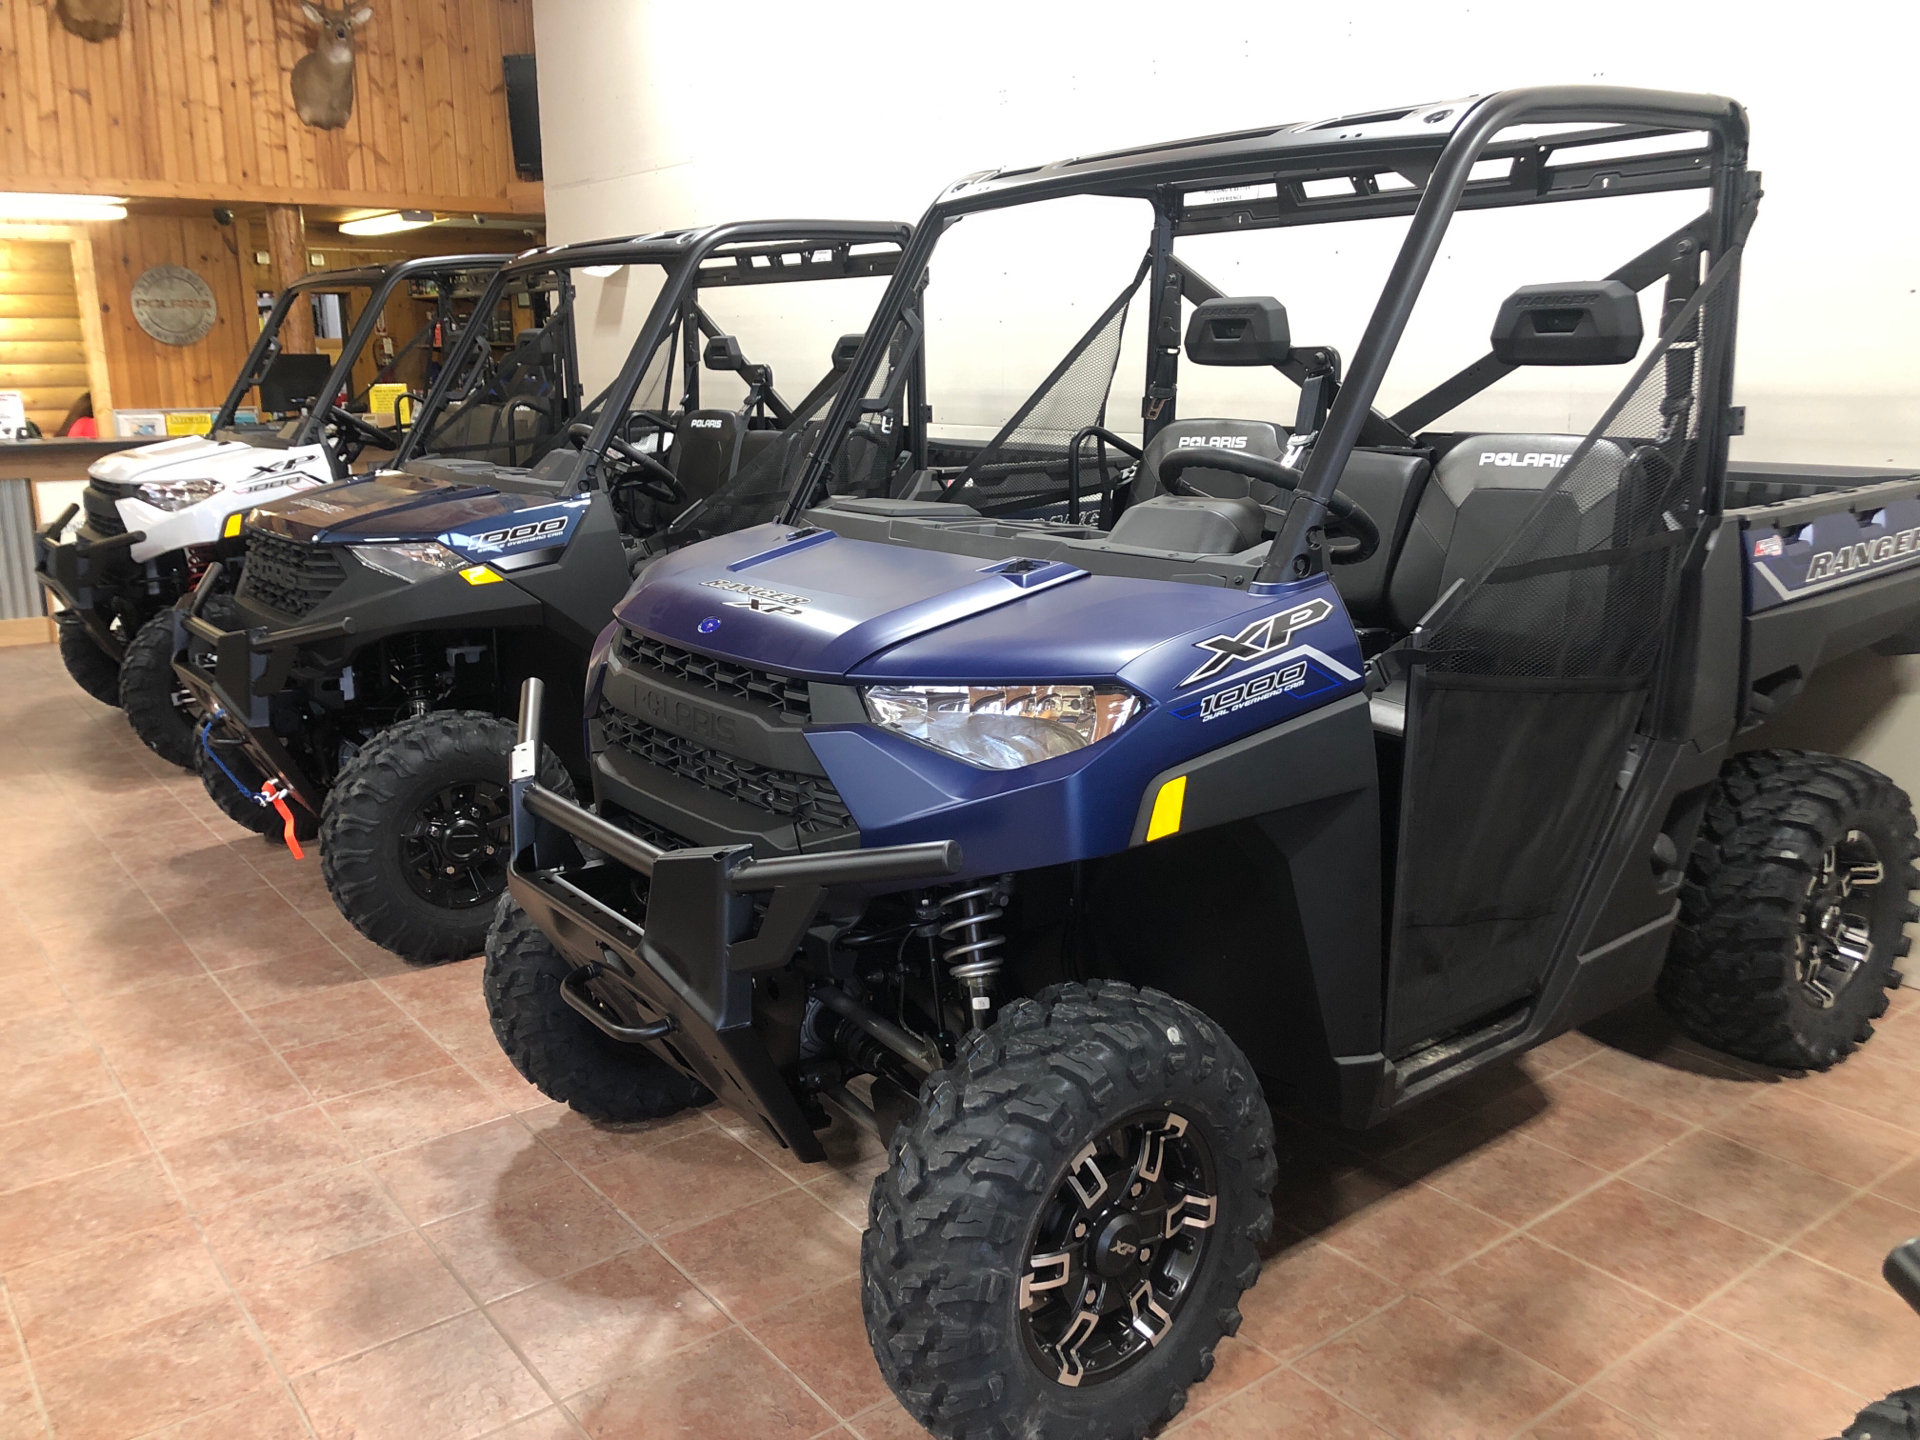 2021 Polaris Ranger XP 1000 Premium in Elkhorn, Wisconsin - Photo 3